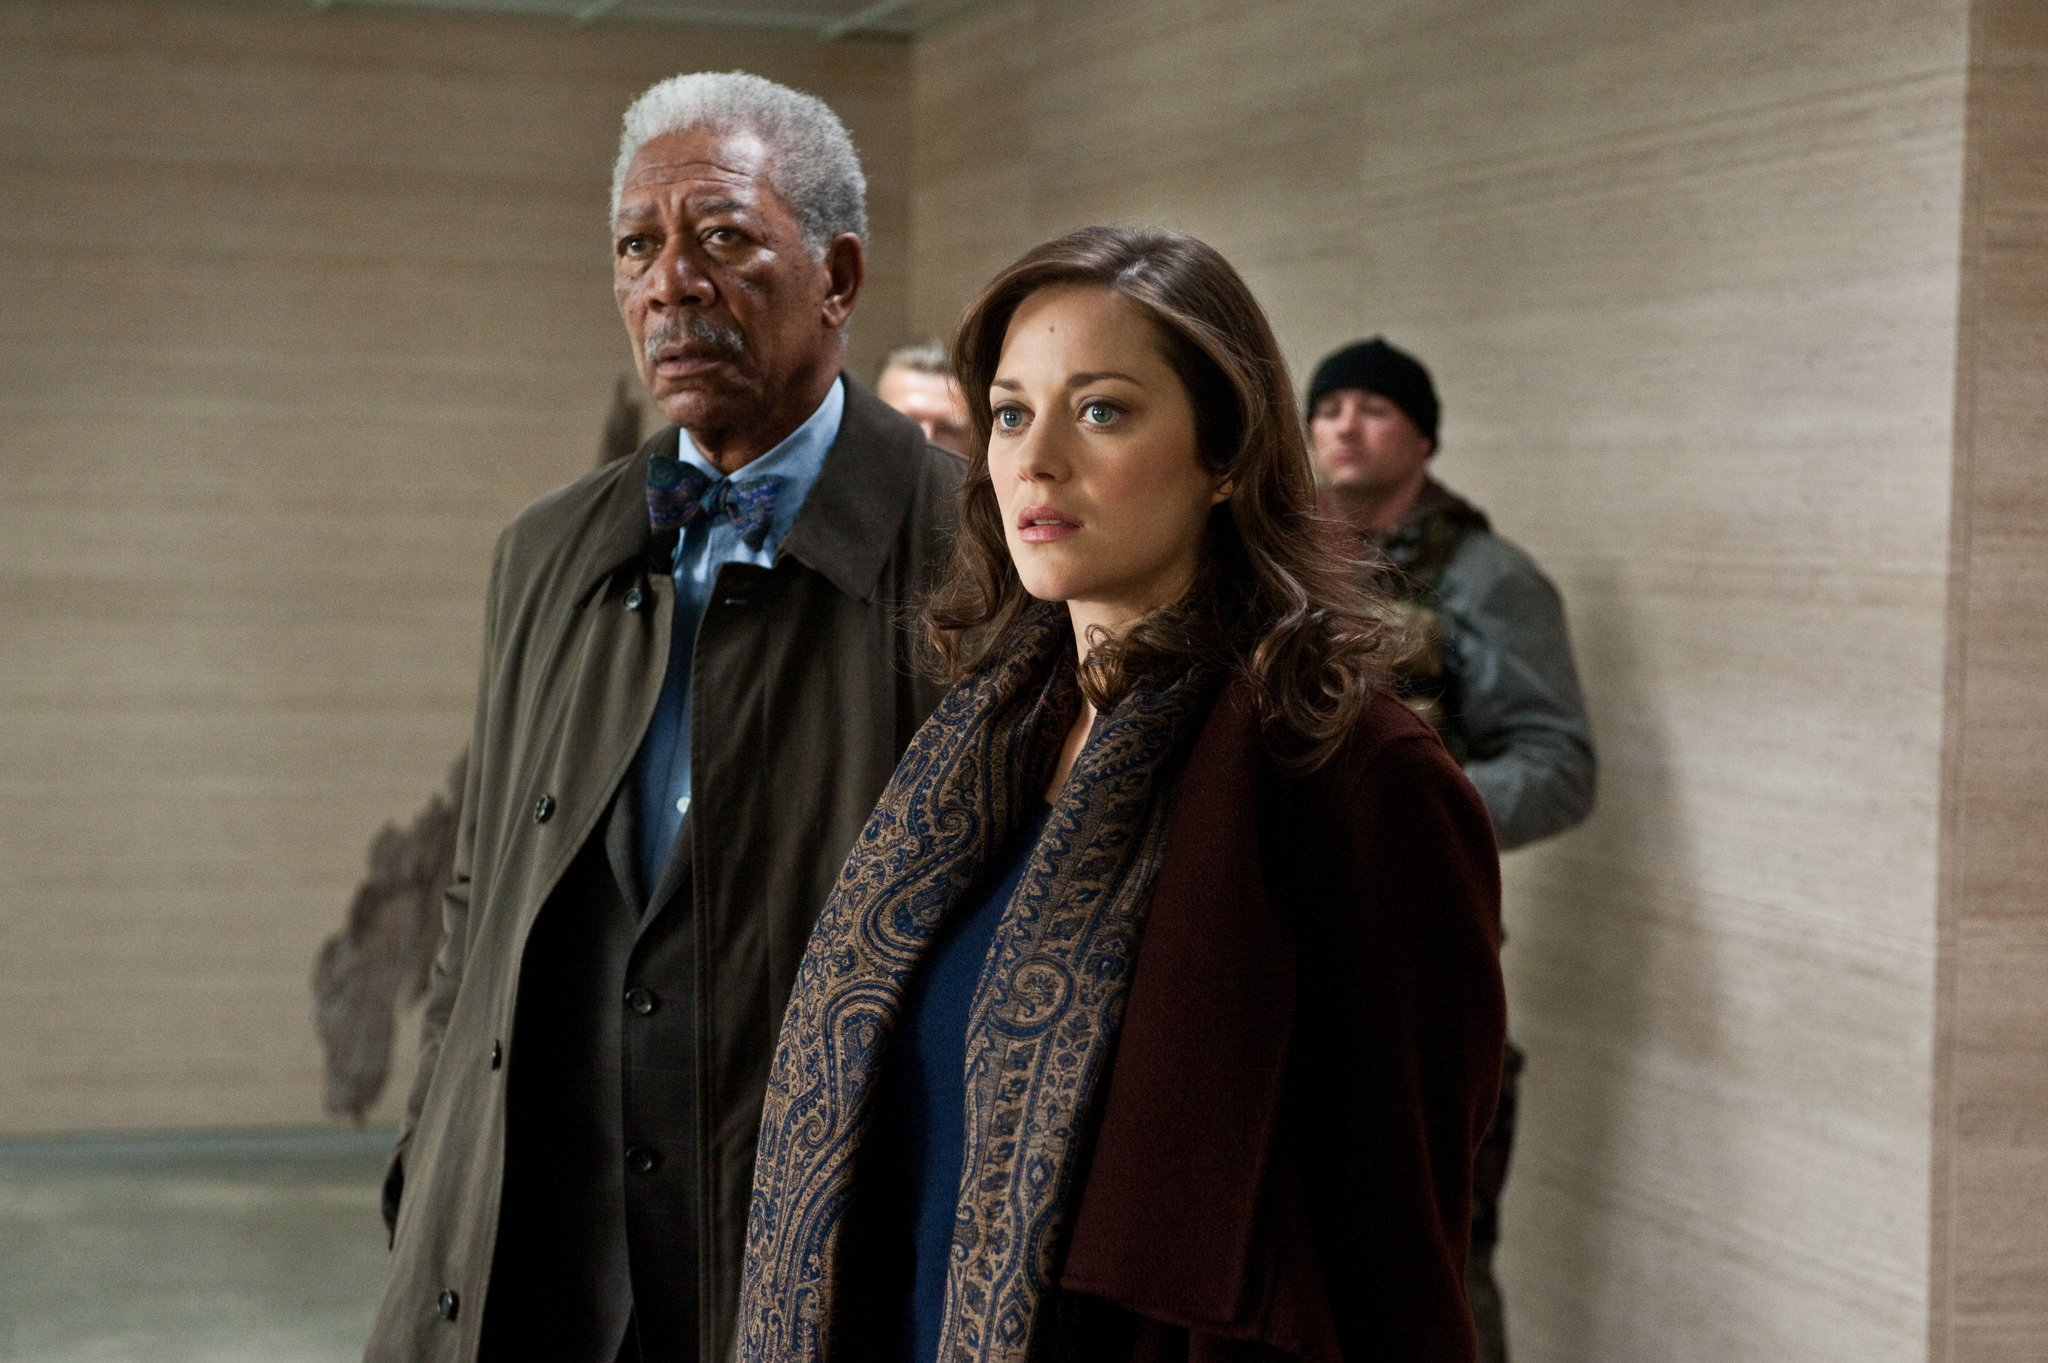 morgan-freeman-marion-cotillard-dark-knight-risesjpg